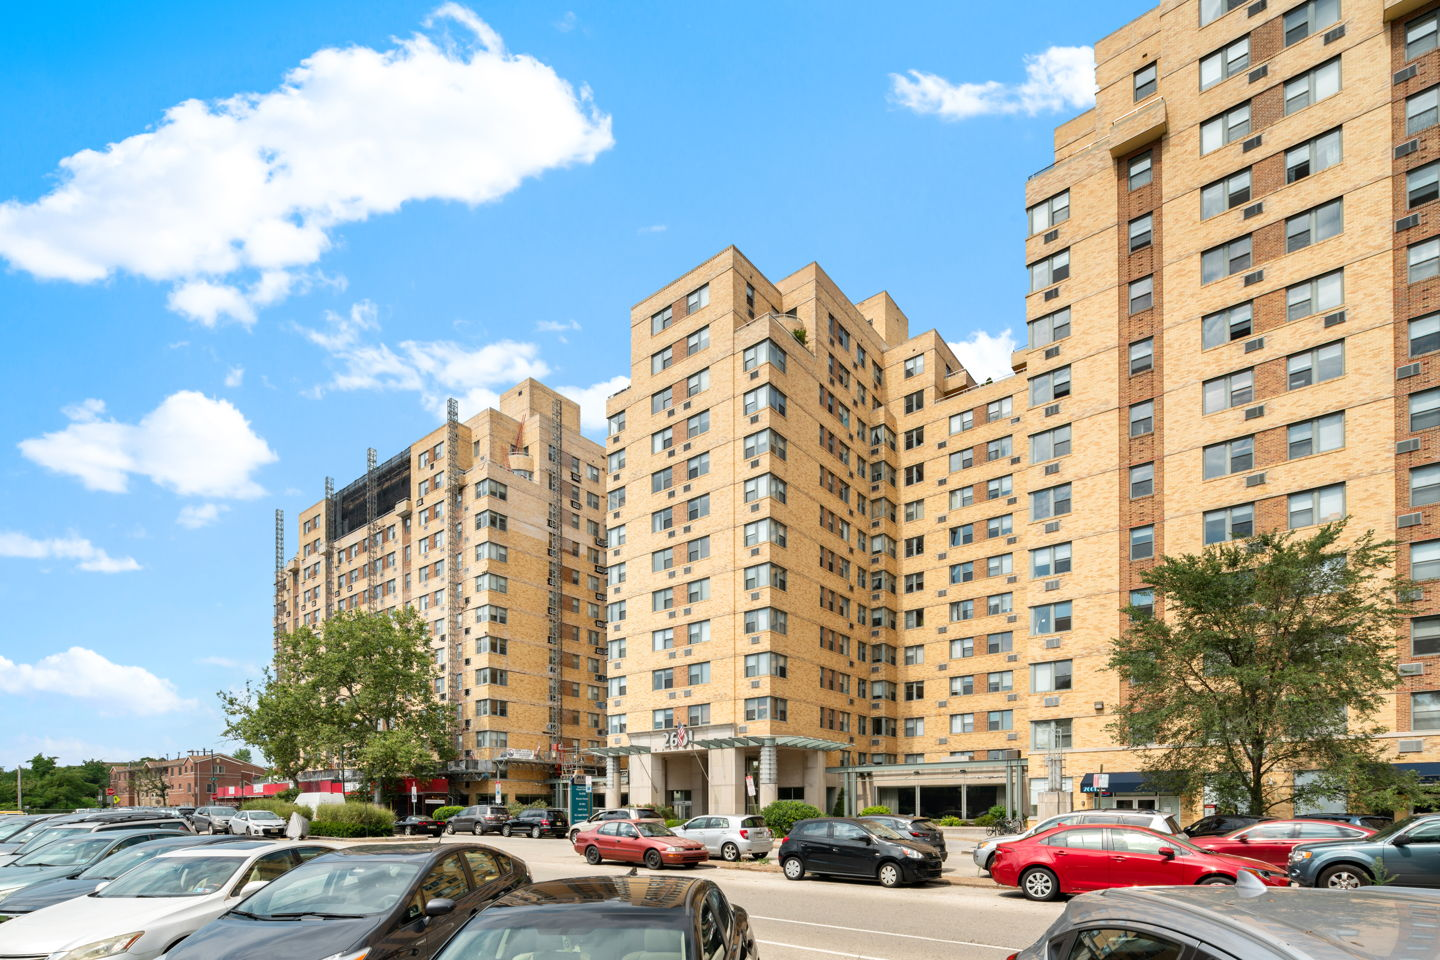 2601 Pennsylvania Ave luxury condo for rent and sale